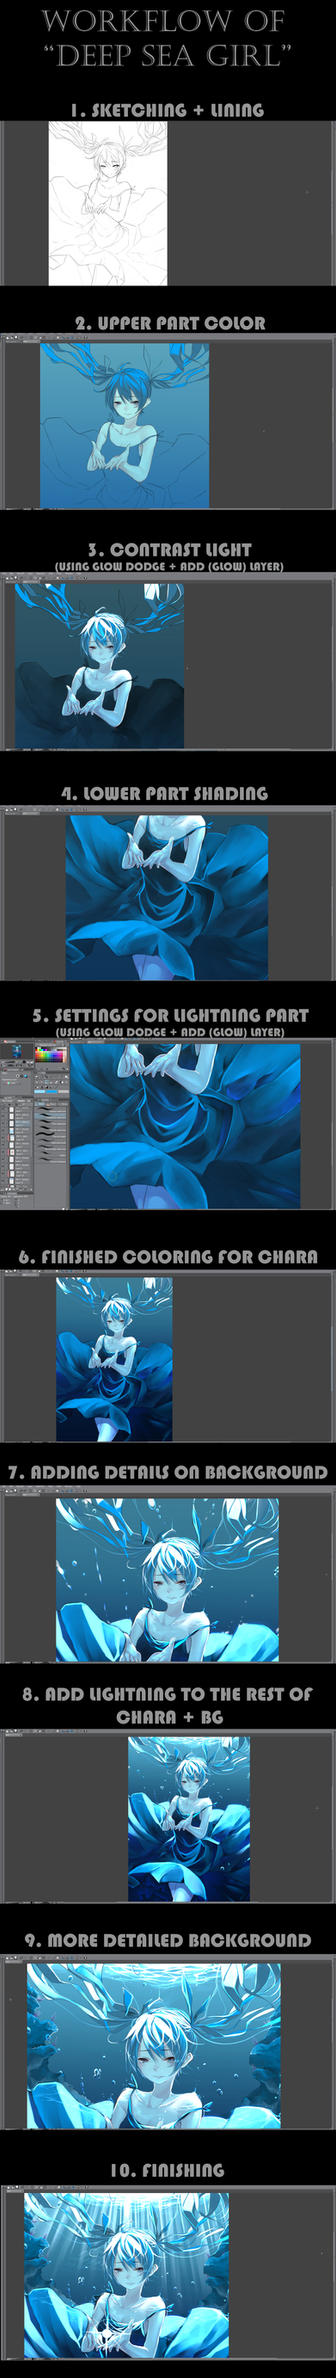 Workflow of Deep Sea Girl illustration by EizenHower